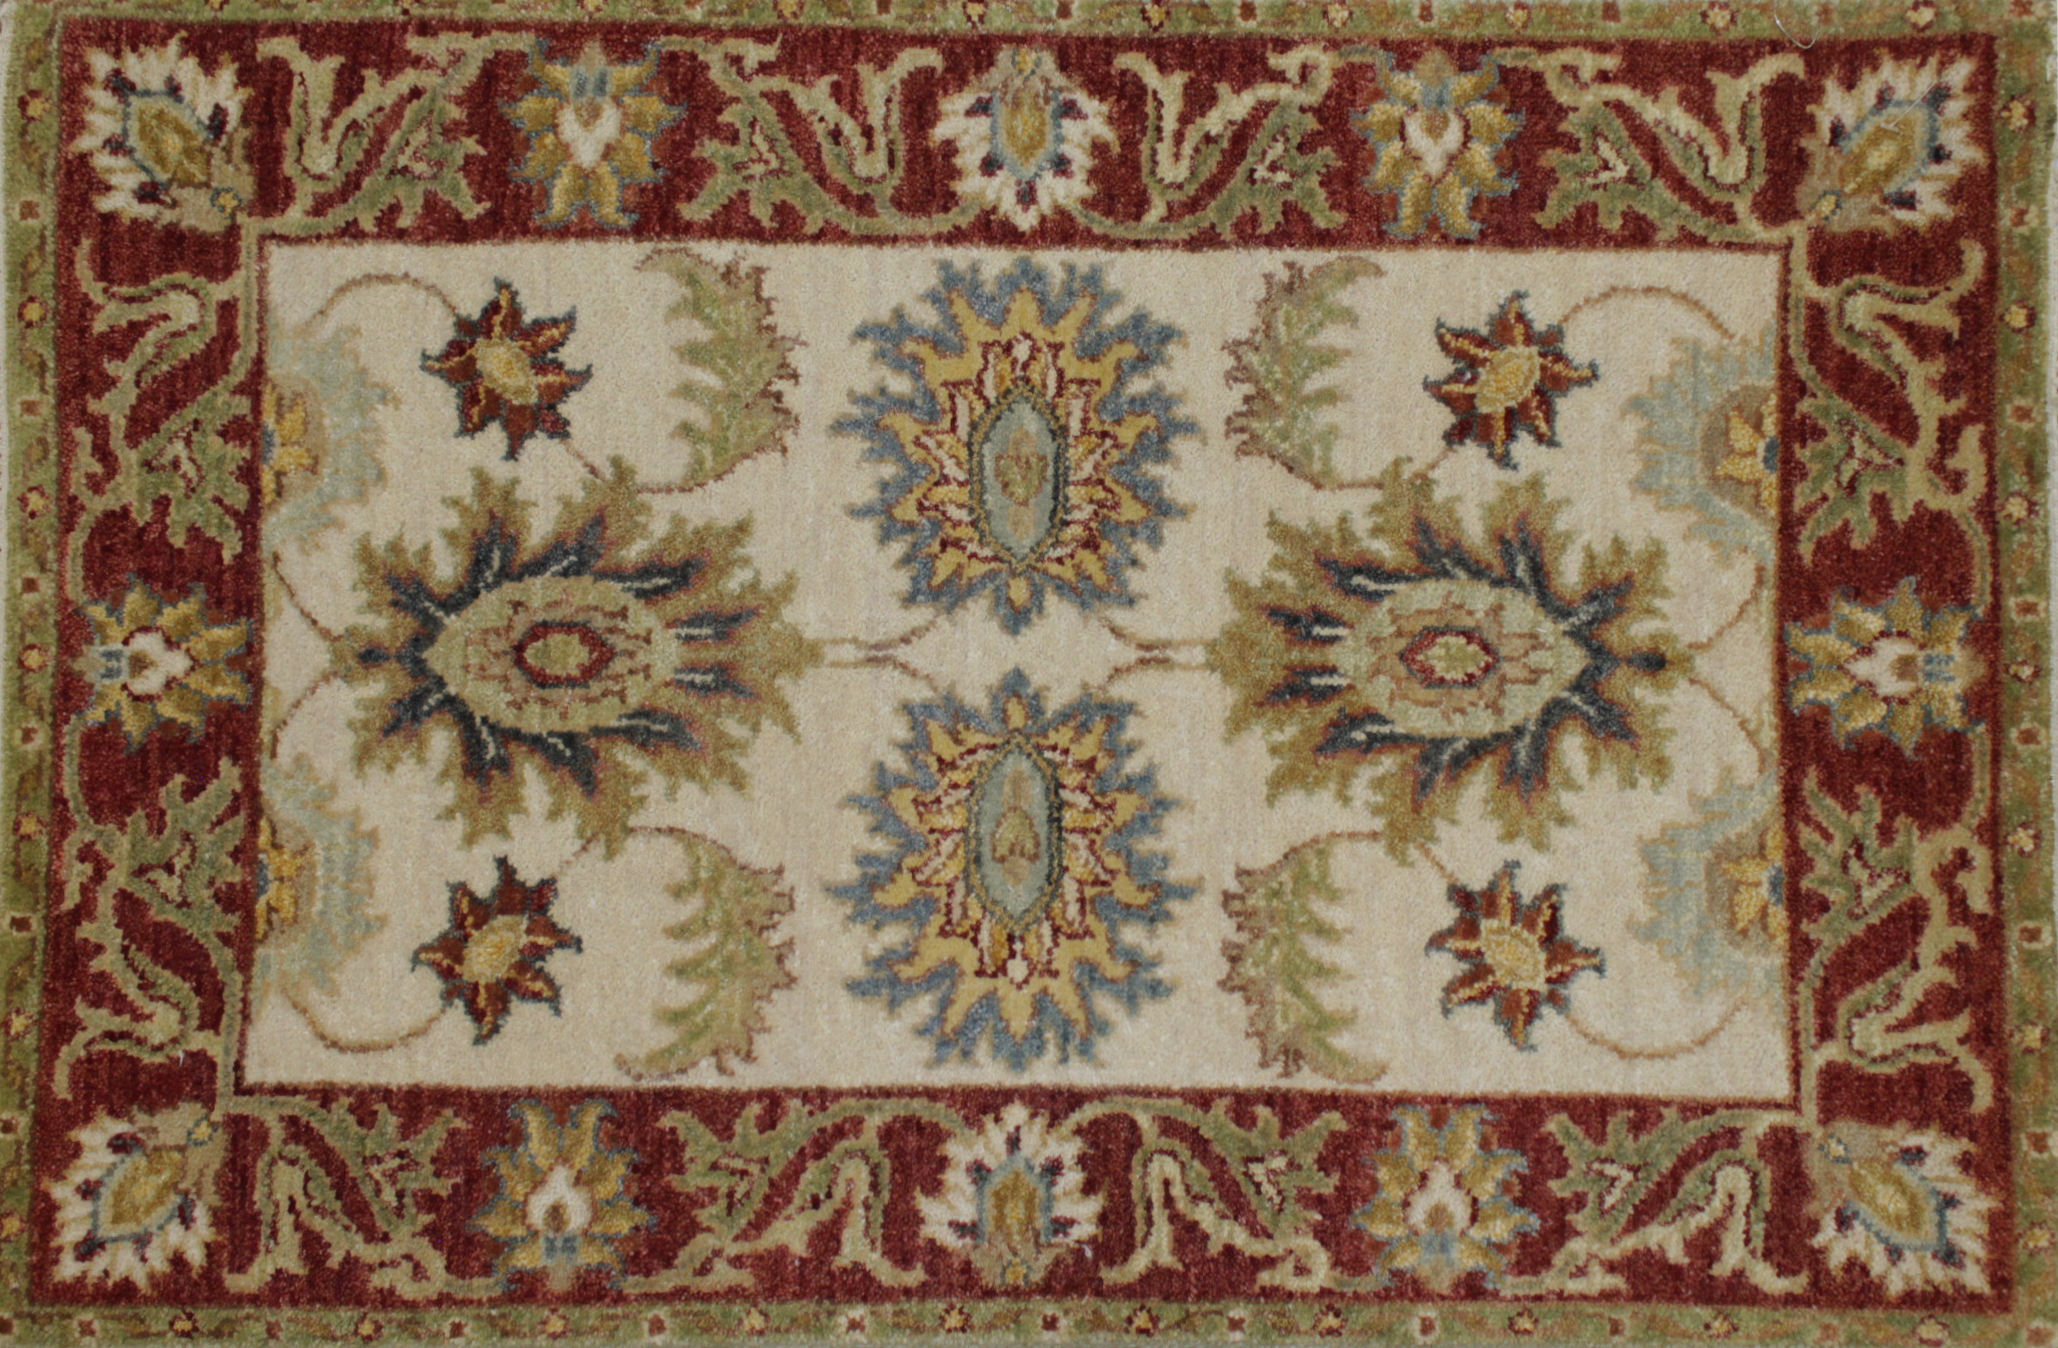 2X3 Traditional Hand Knotted Wool Area Rug - MR022076